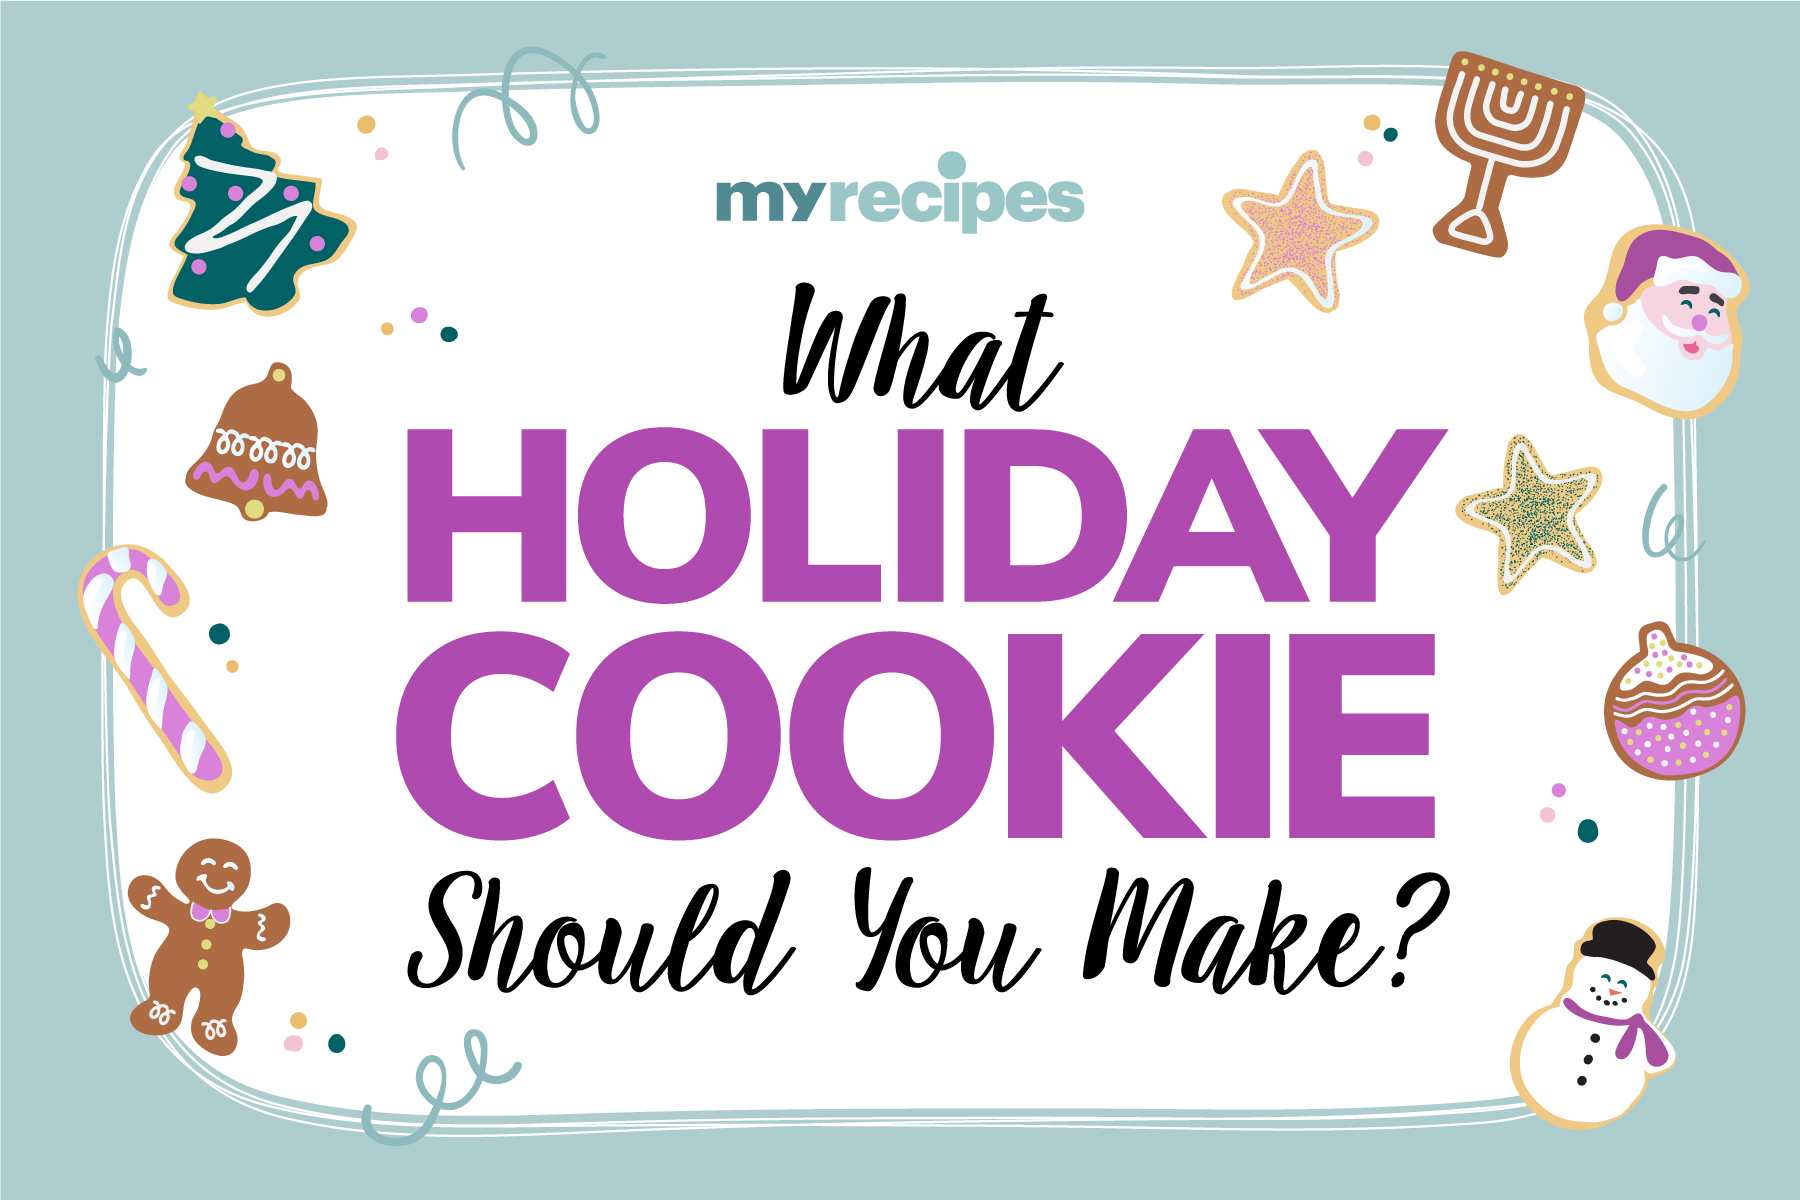 Holiday Cookie illustrations with the text MyRecipes What Holiday Cookie Should You Make?